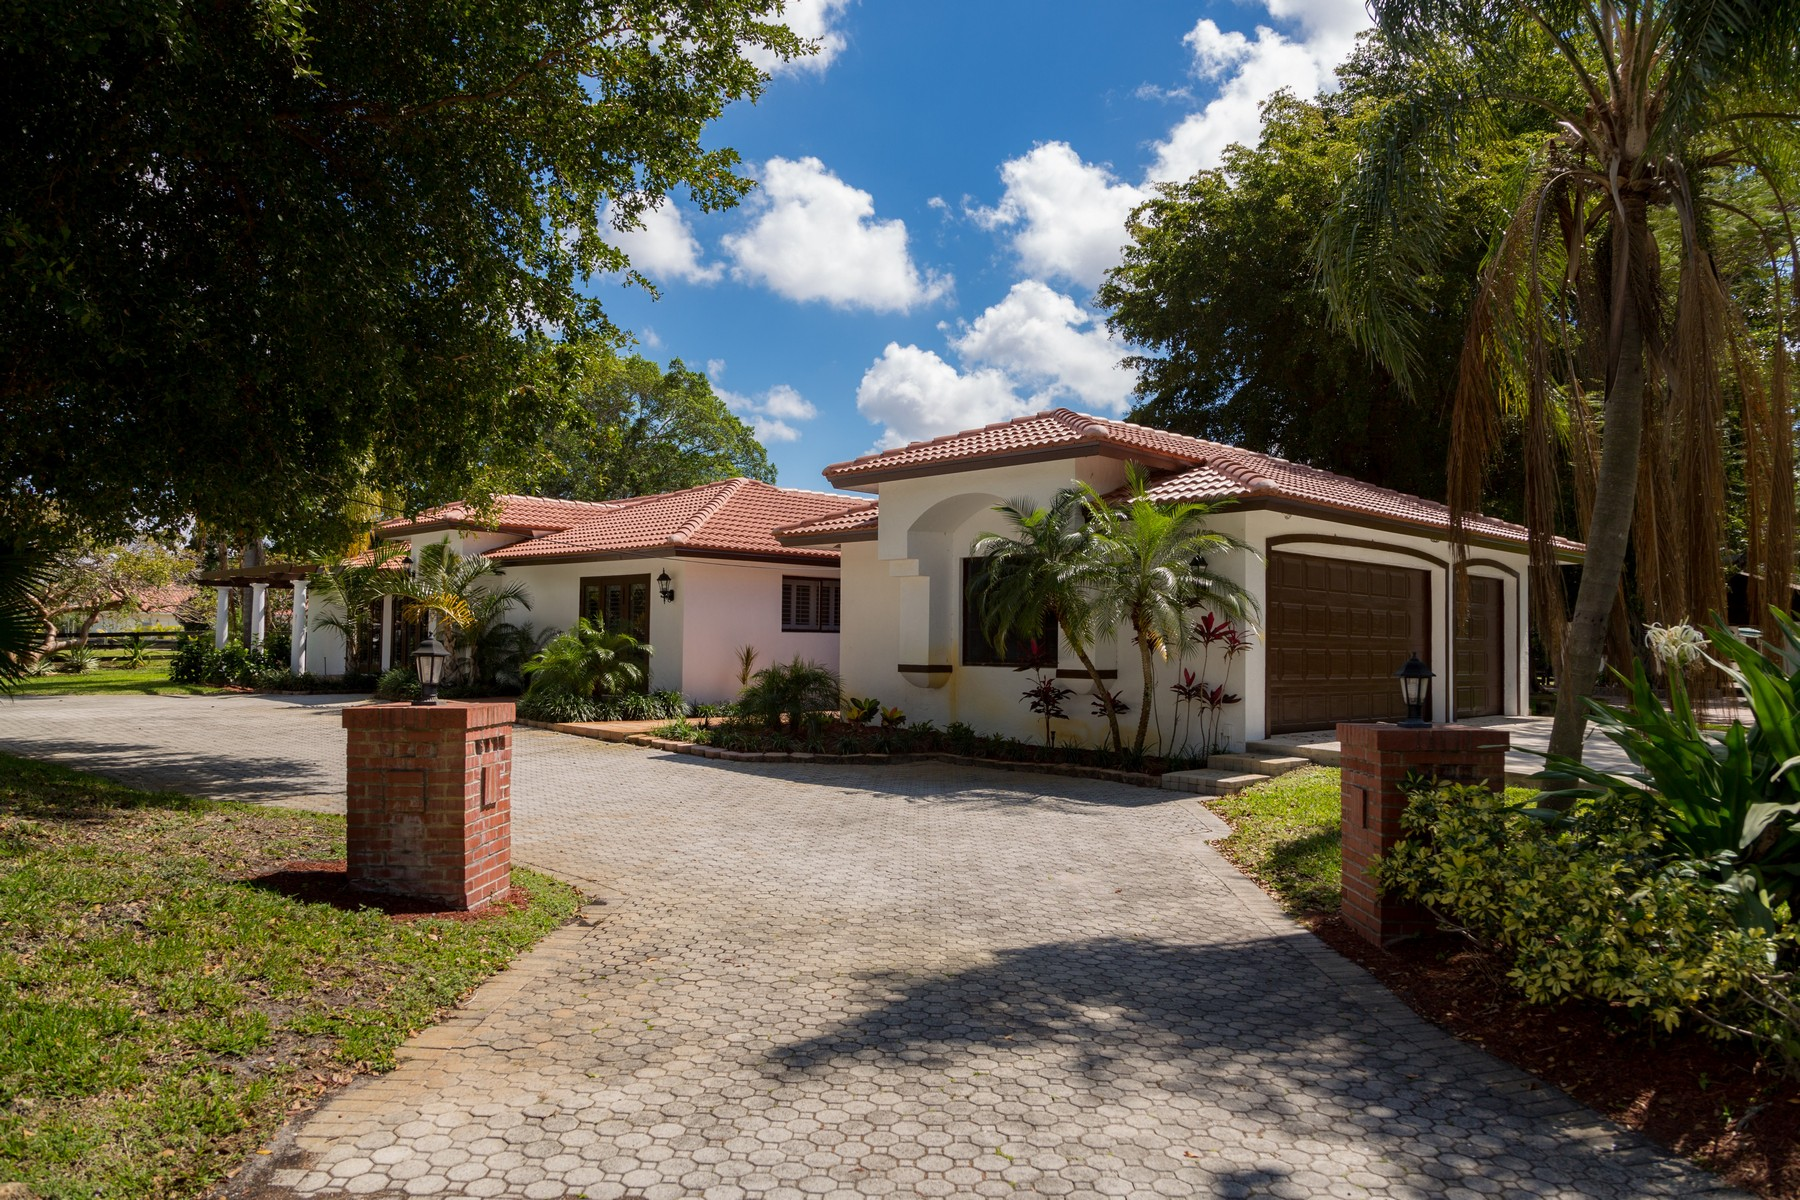 Single Family Home for Sale at 8234 Stagecoach Ln , Boca Raton, FL 33496 8234 Stagecoach Ln Boca Raton, Florida, 33496 United States